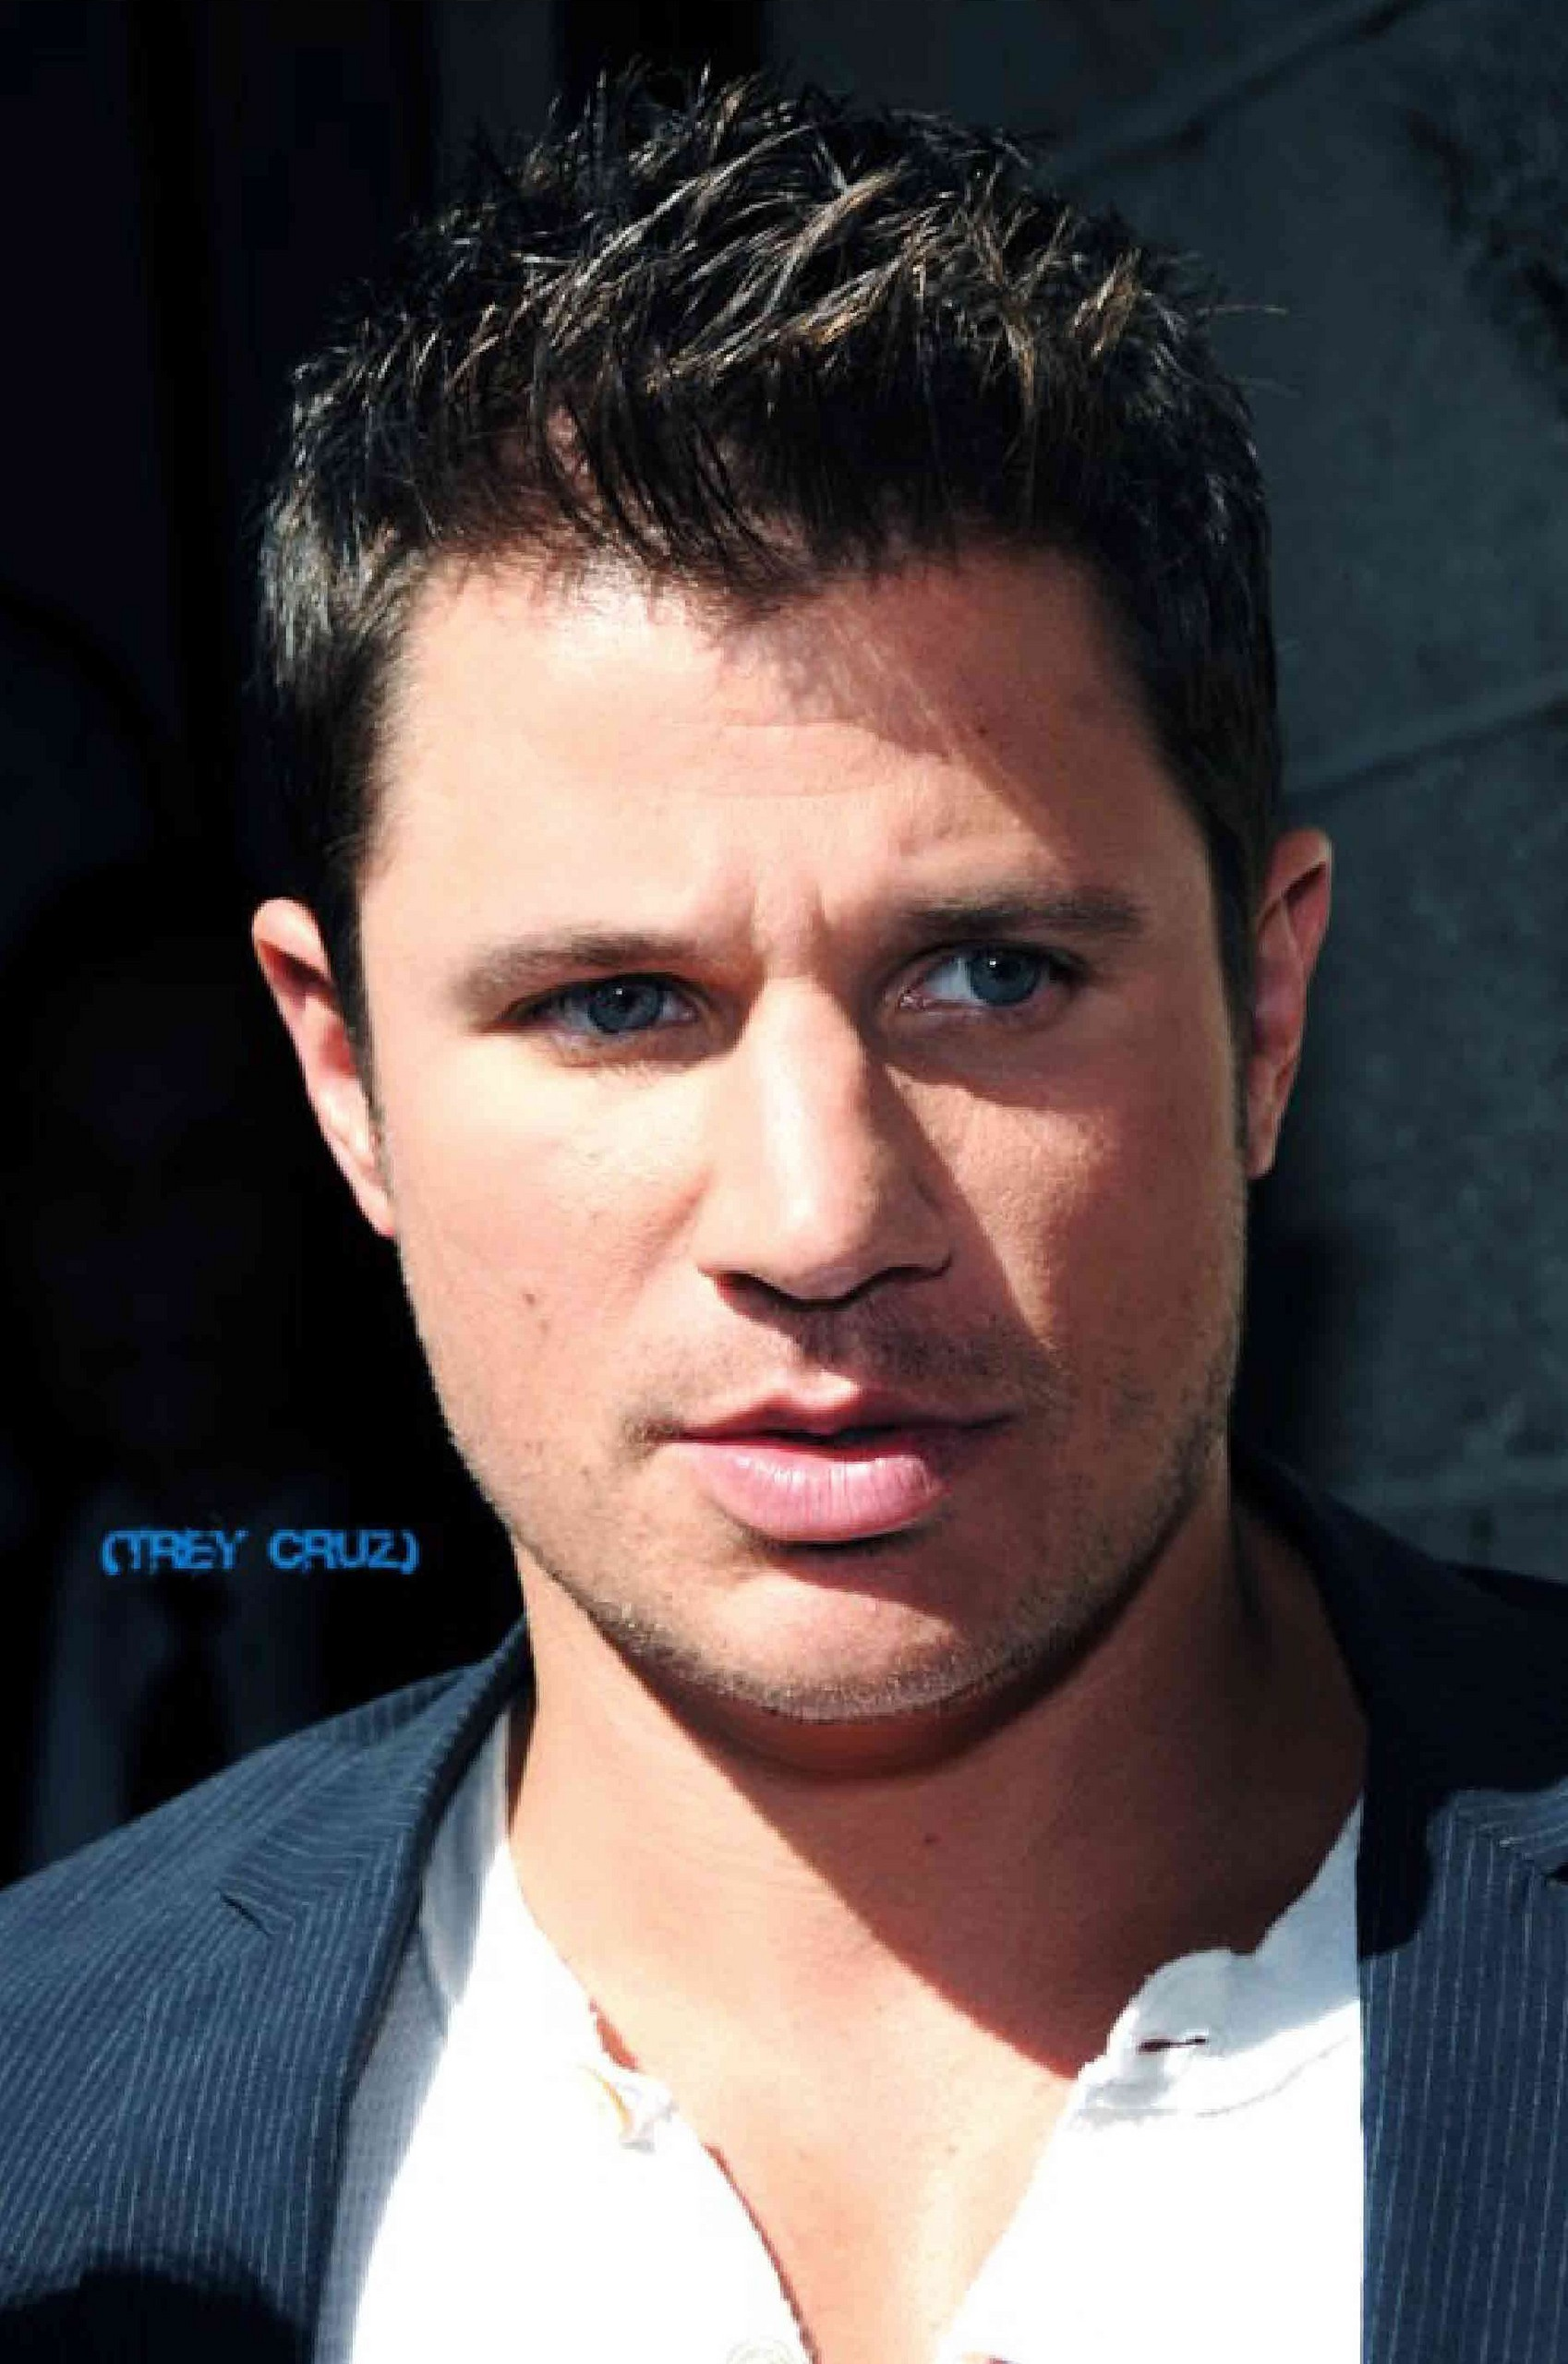 Sexey Girl Wallpaper Nick Lachey Images Nick Lachey Hd Wallpaper And Background